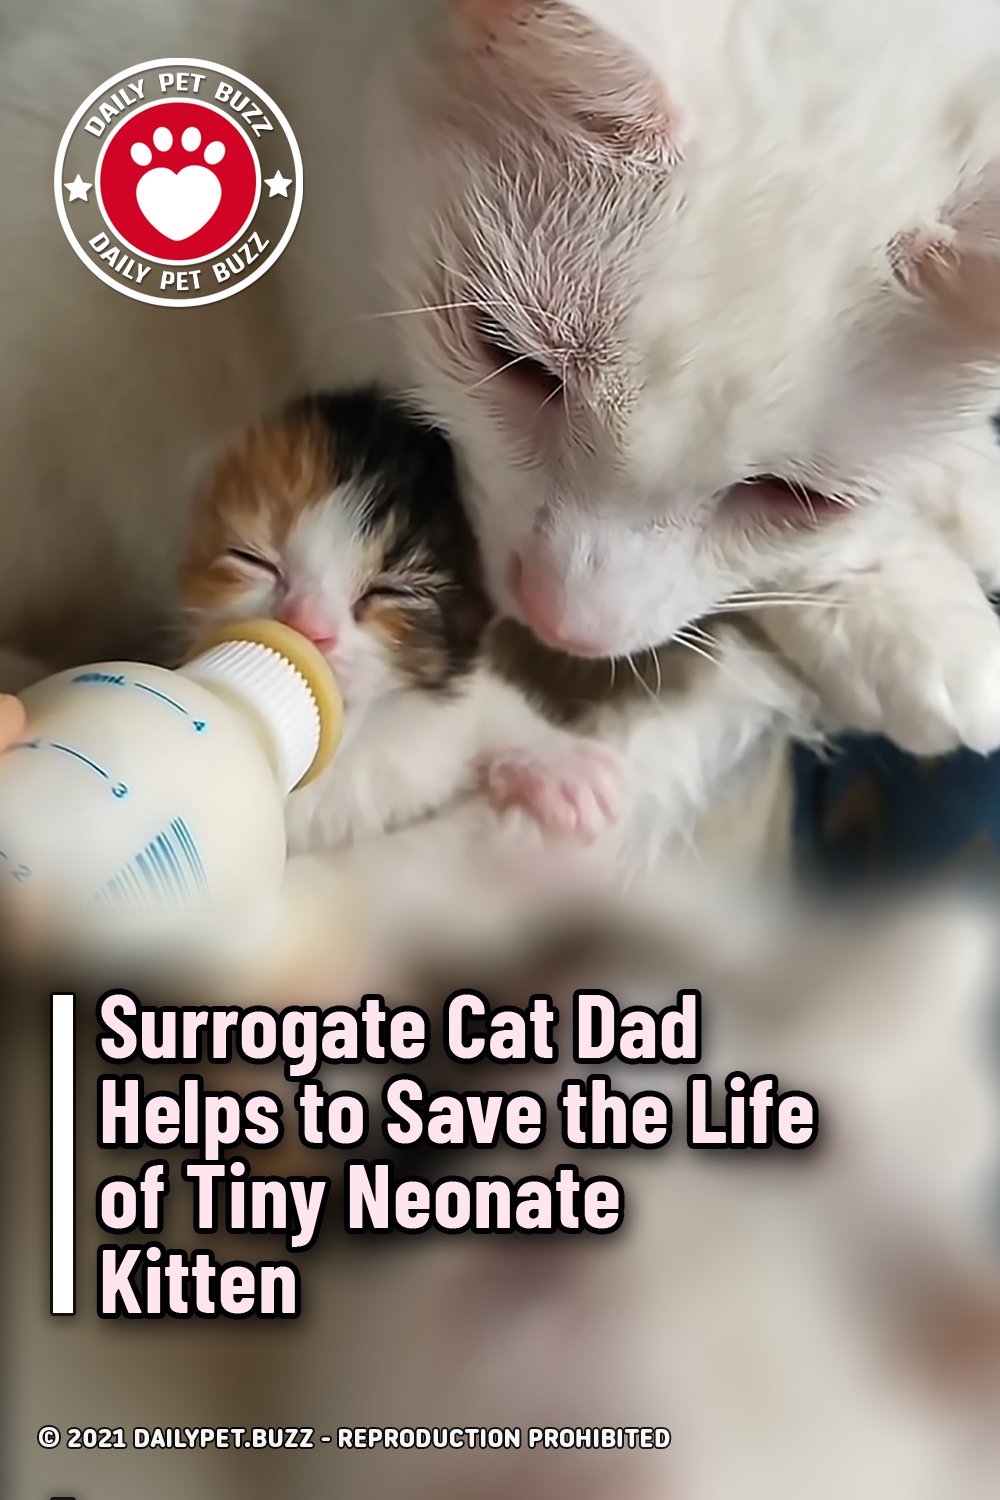 Surrogate Cat Dad Helps to Save the Life of Tiny Neonate Kitten